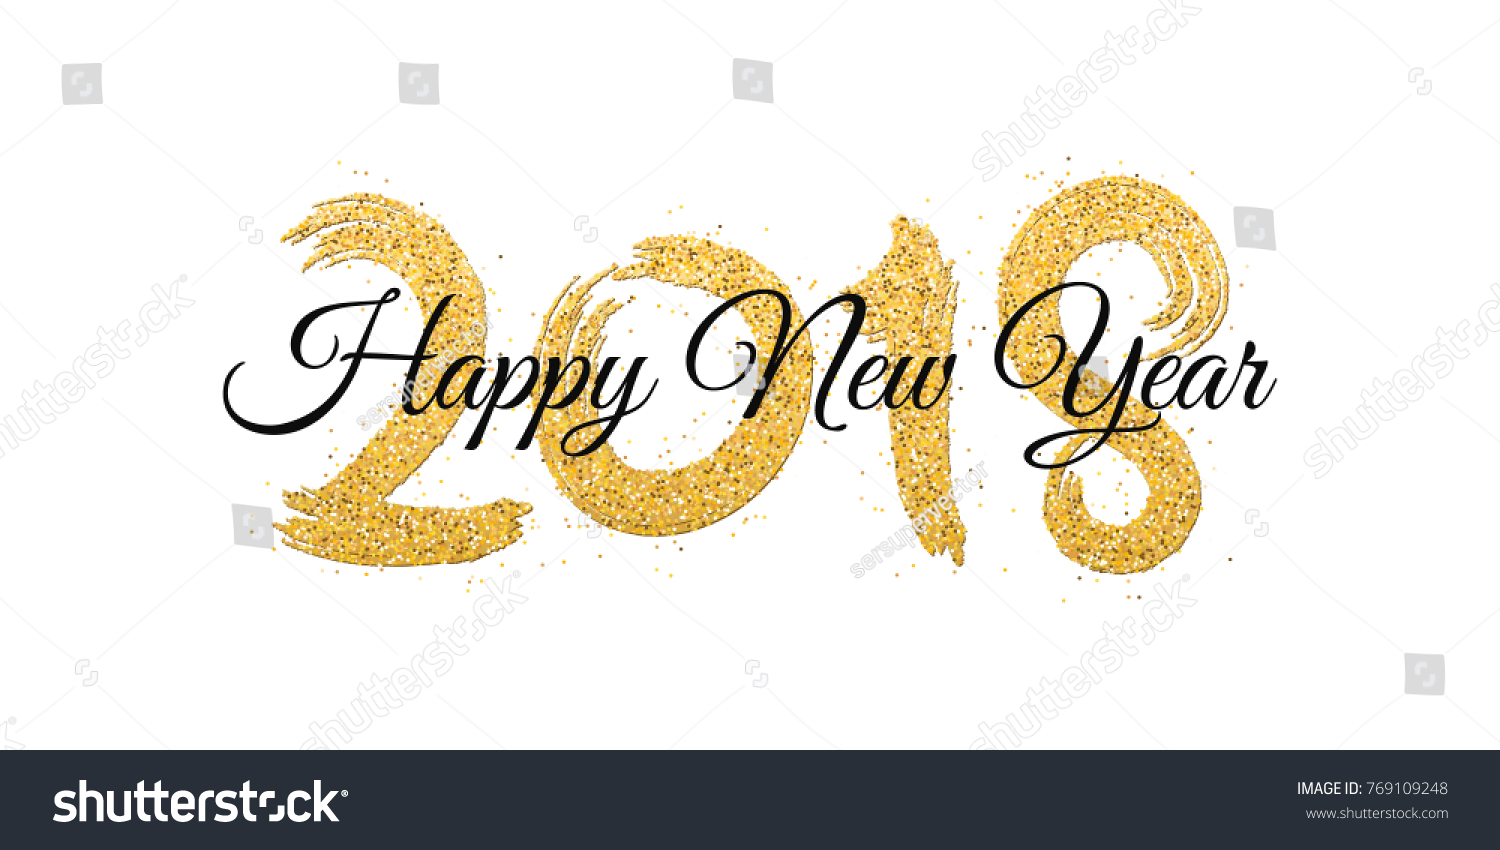 happy new year 2018 numbers of golden glitters with black text on a white background